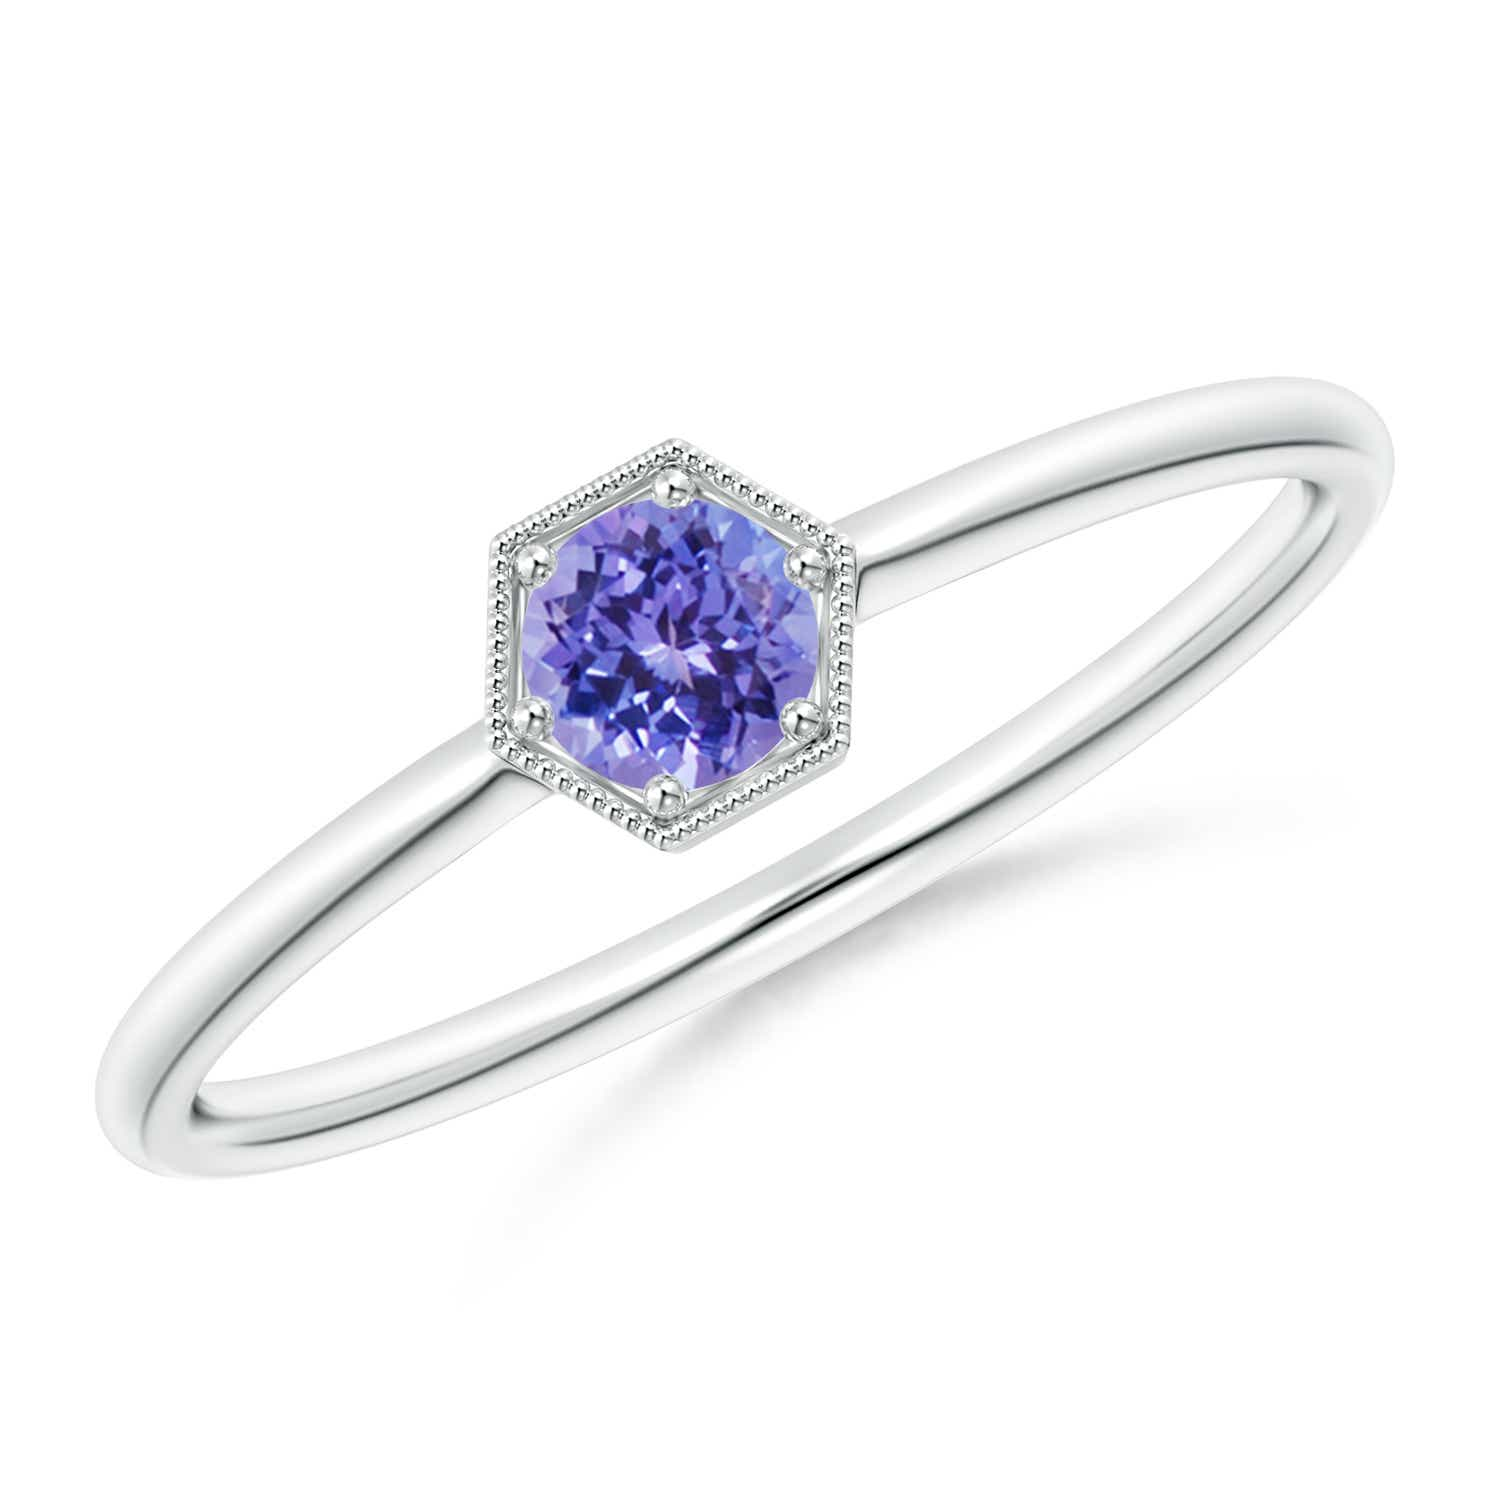 Pave Set Tanzanite Hexagon Solitaire Ring with Milgrain 14K White